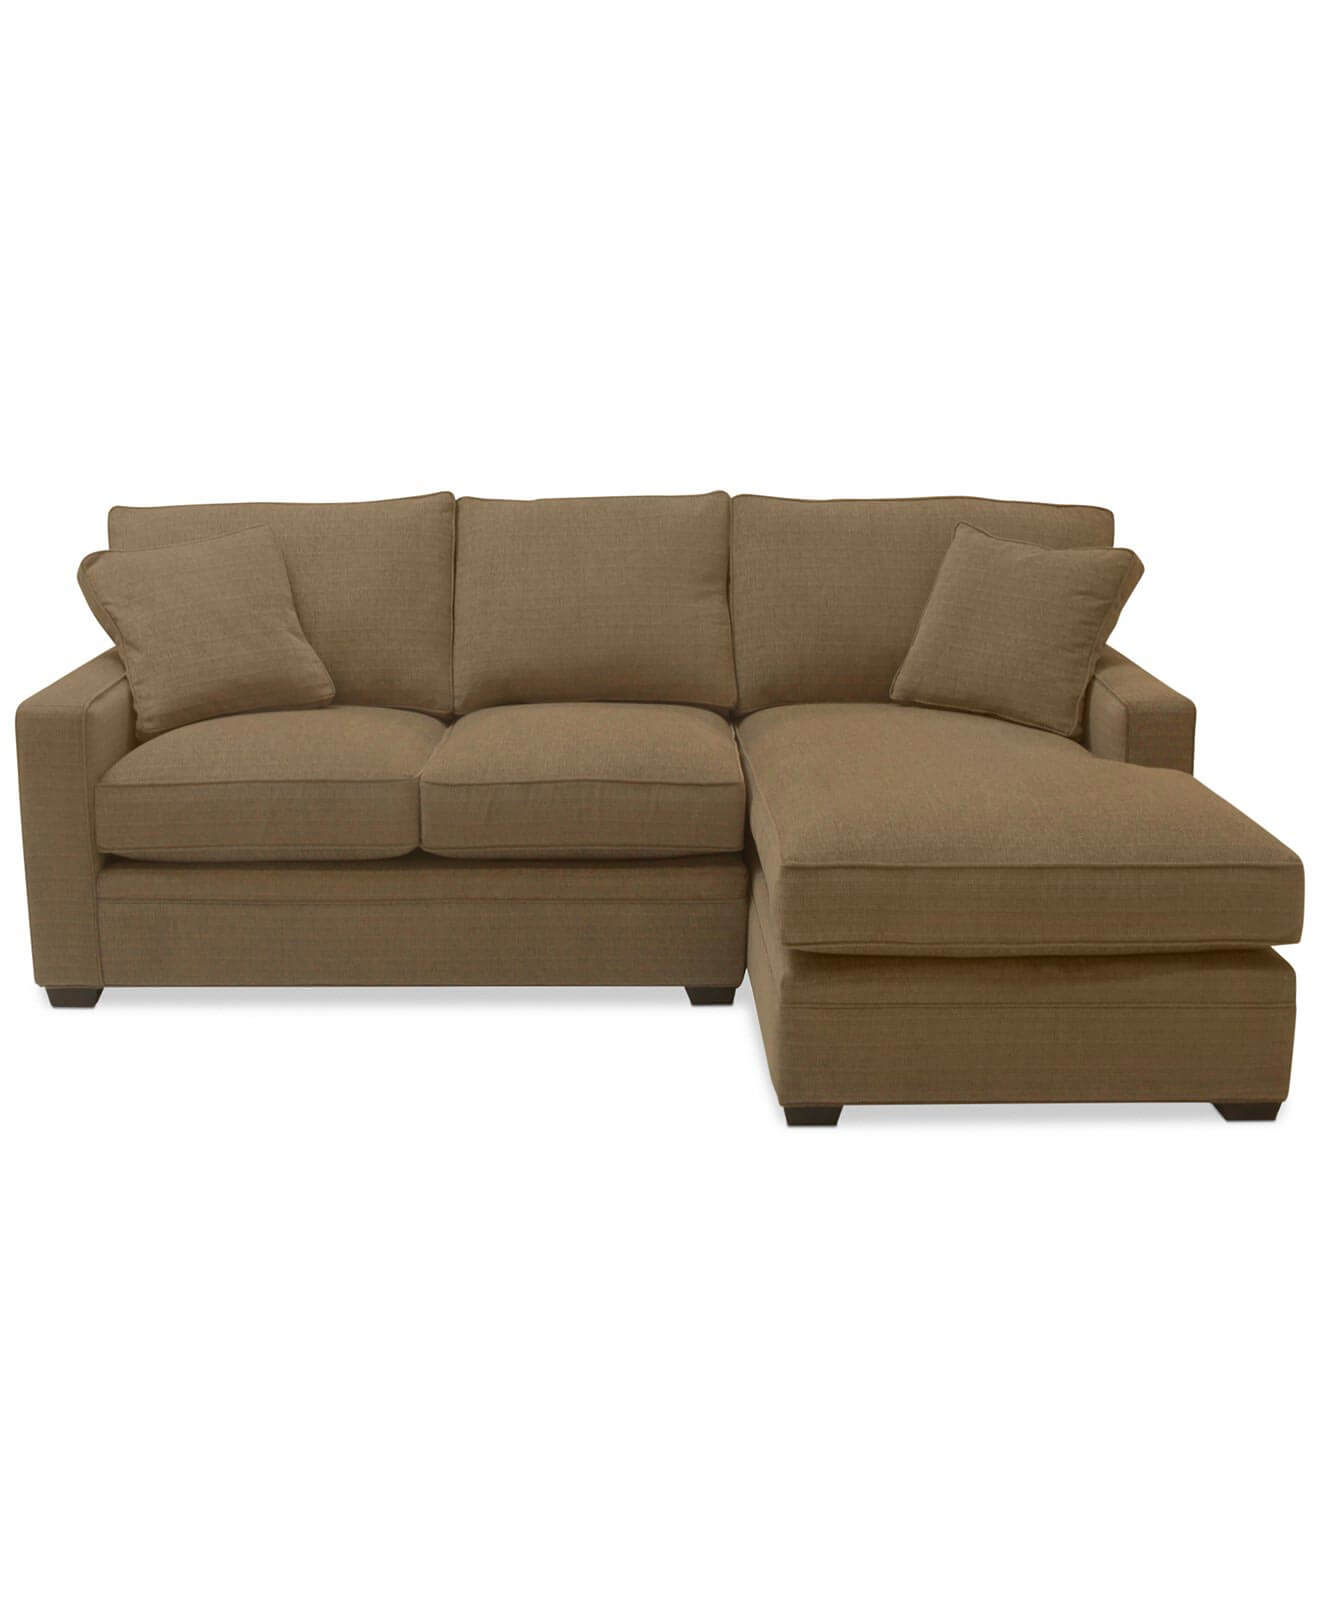 transitional style sectional sofas child sofa seat two piece having track styled